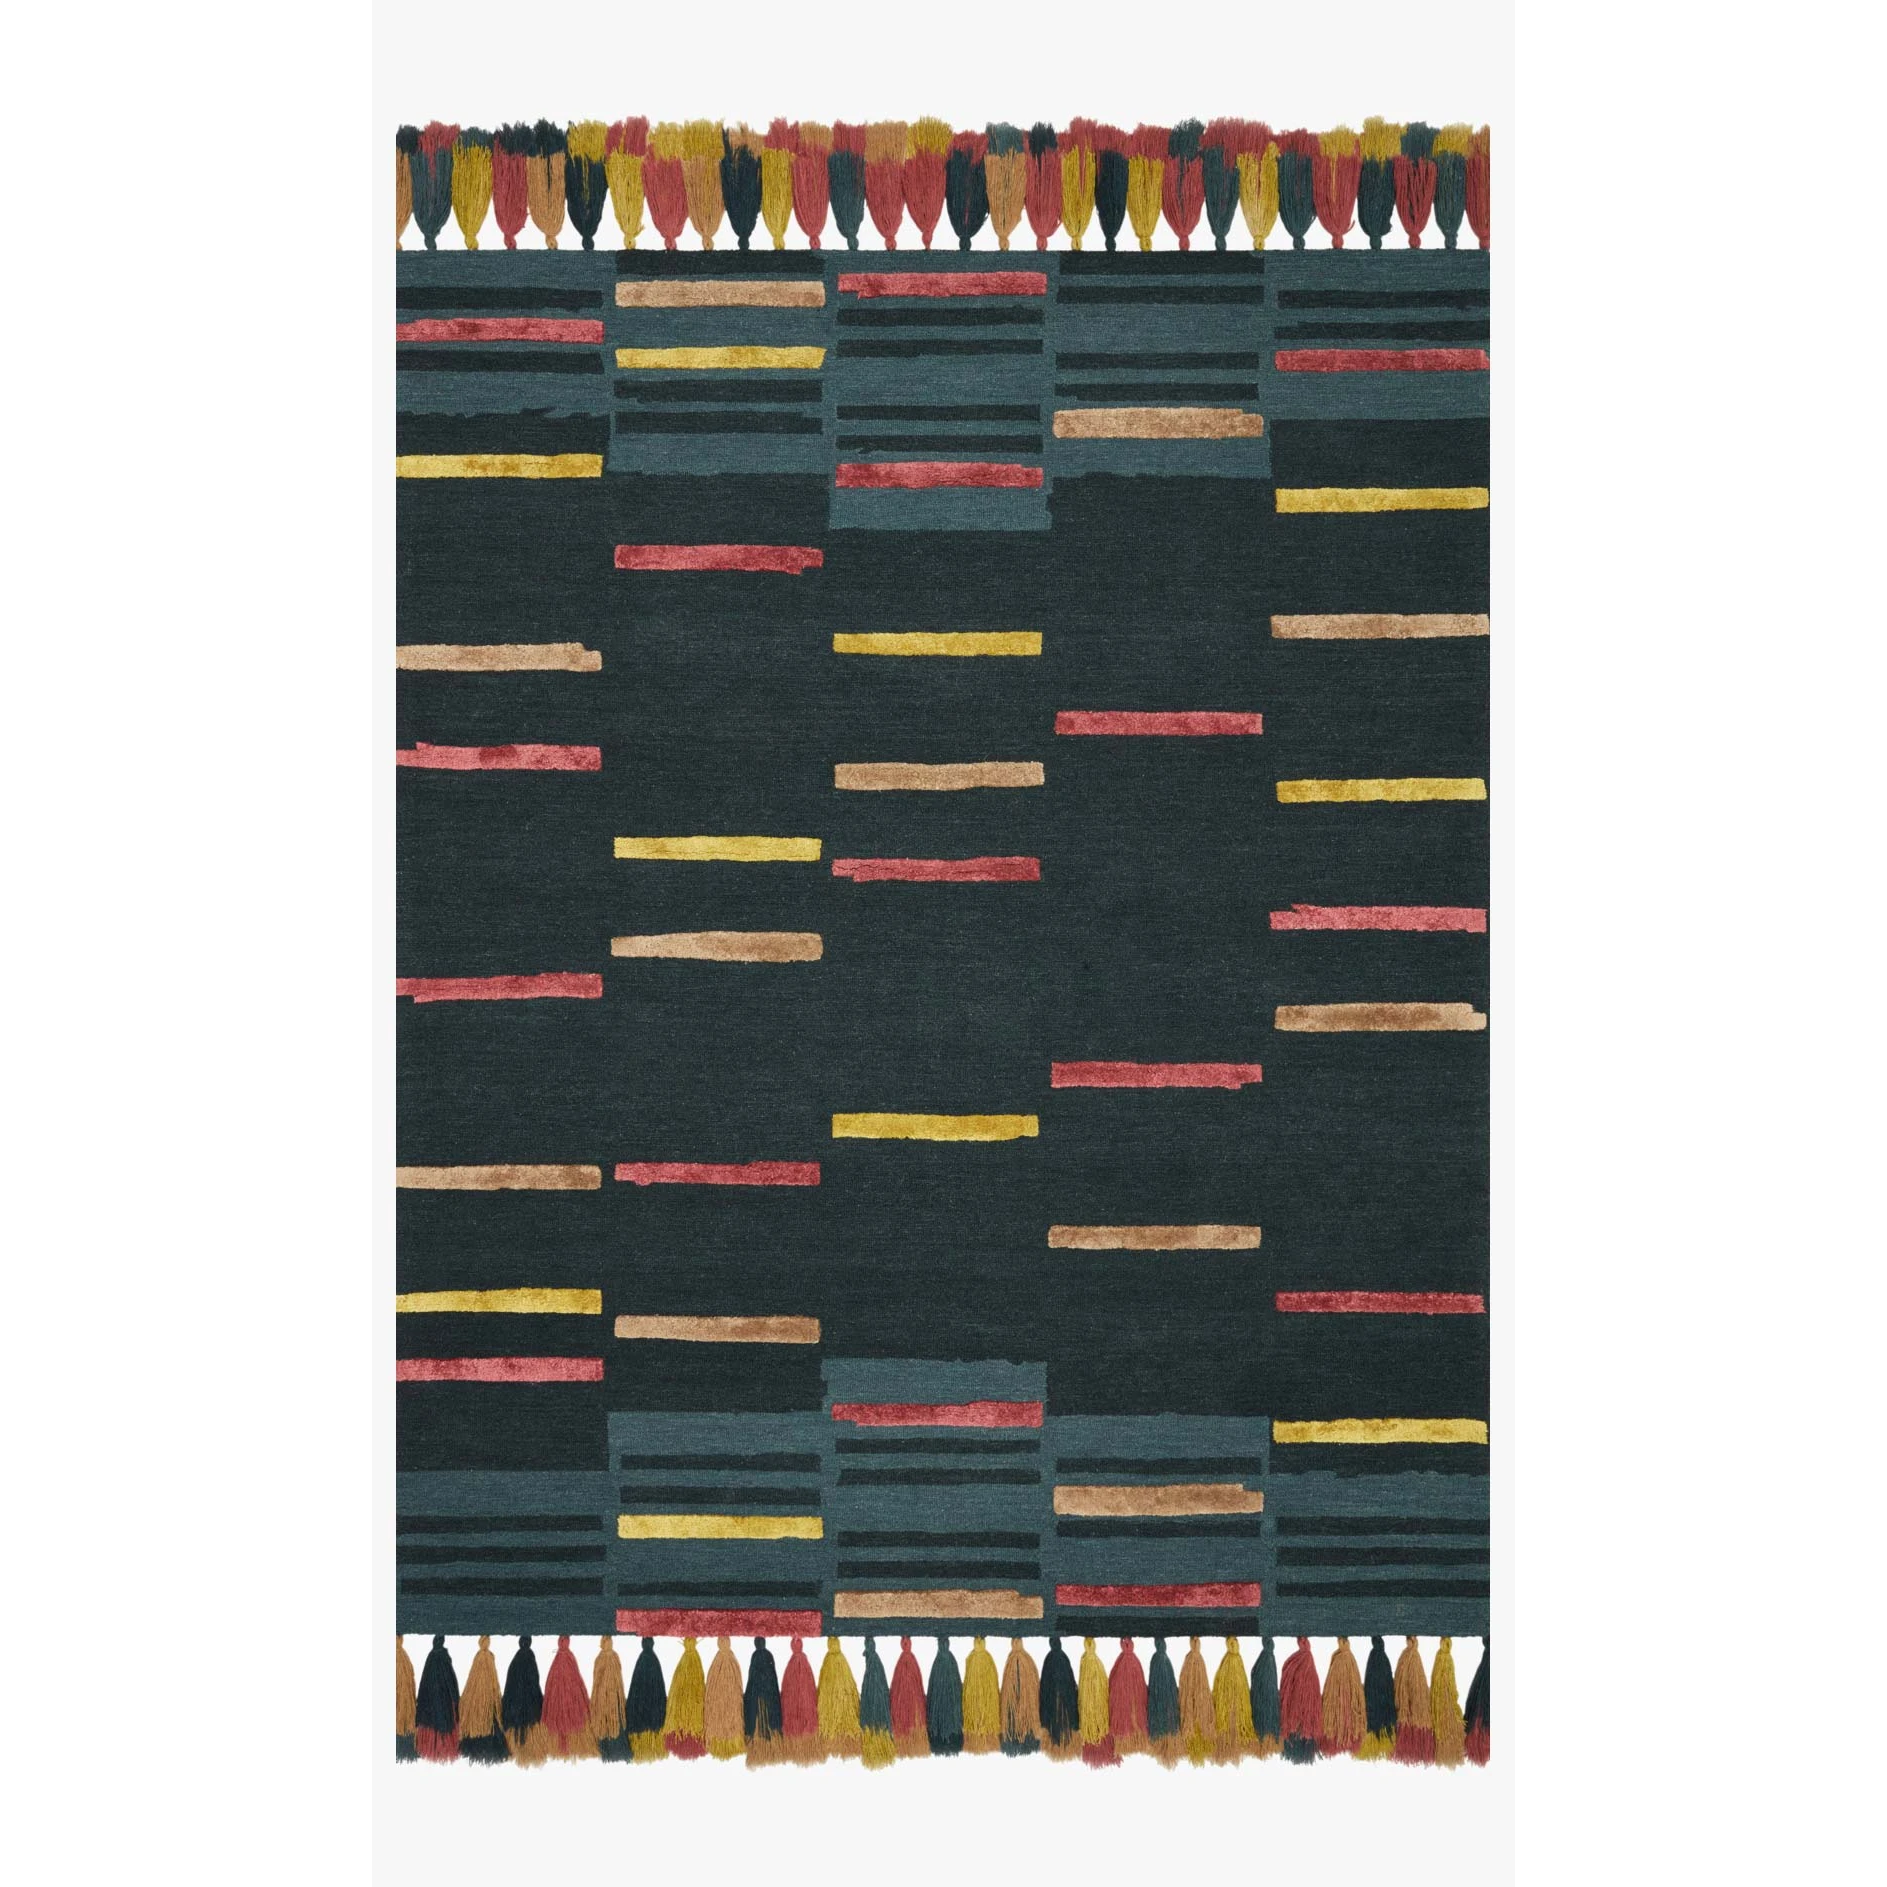 Justina Blakeney Jamila Rug Collection - JAA-03 Teal/Sunset-Loloi Rugs-Blue Hand Home